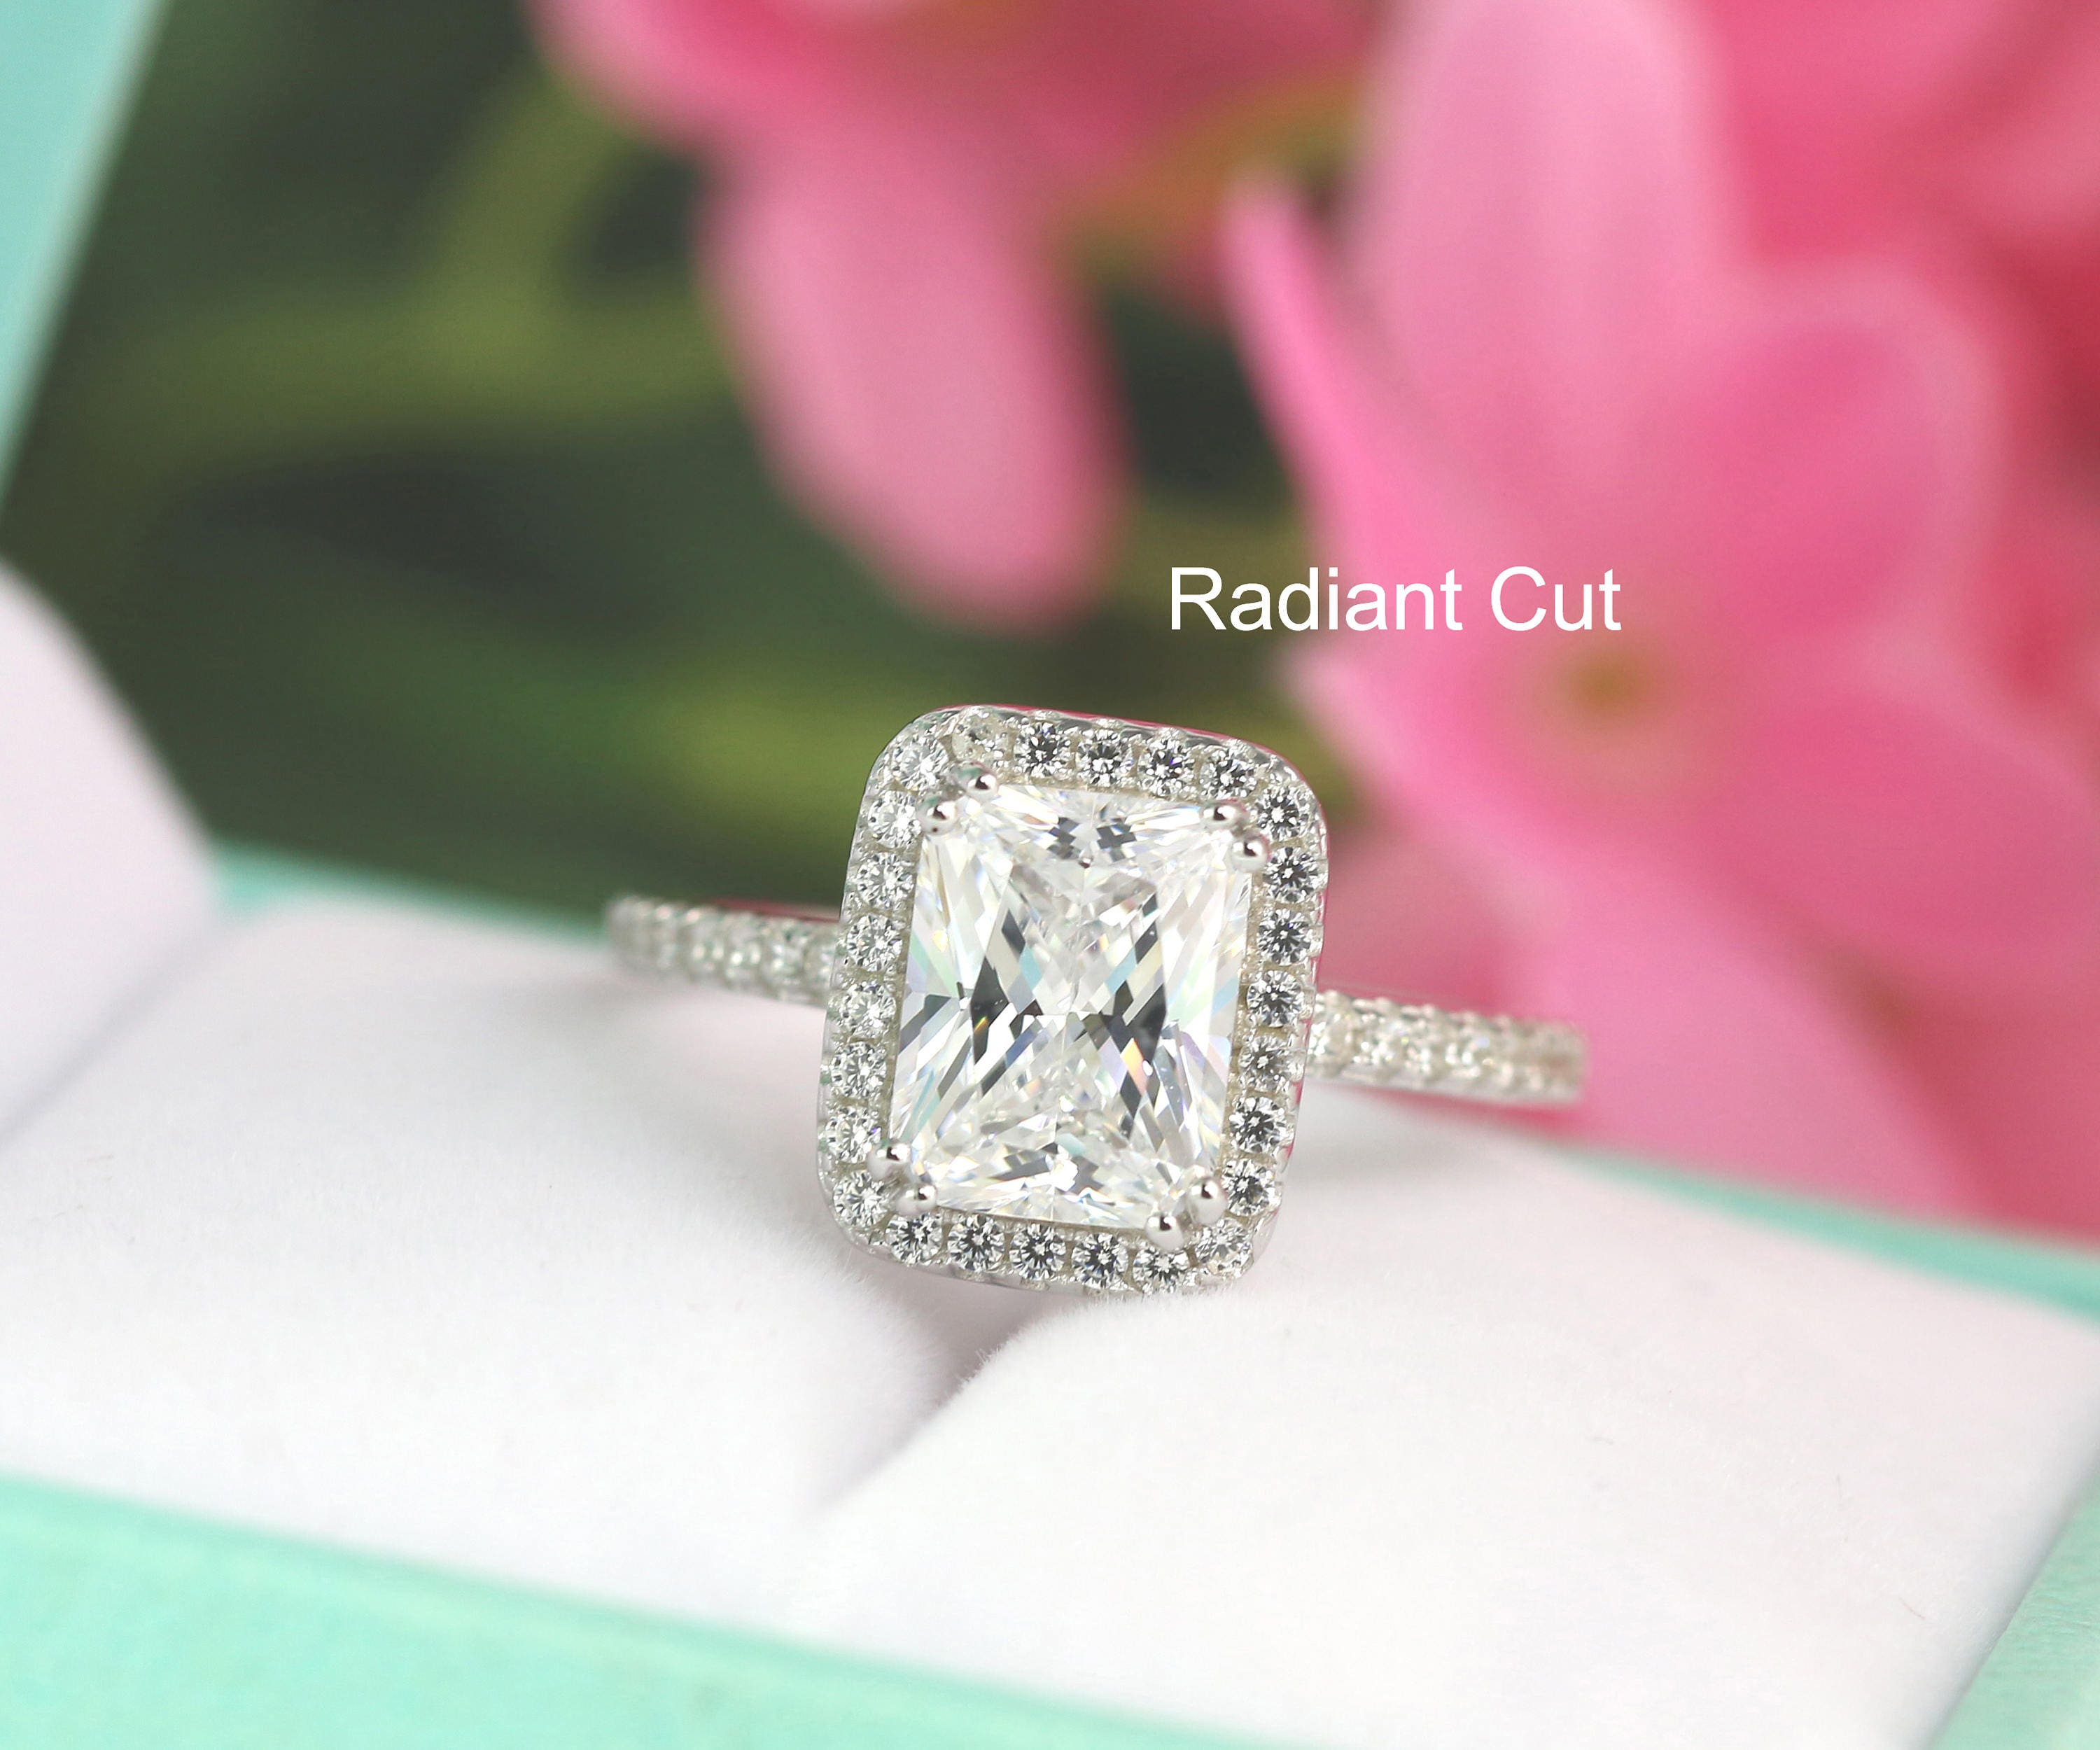 jewelry carat best image rings diamond yellow fancy cut world ring radiant s gia